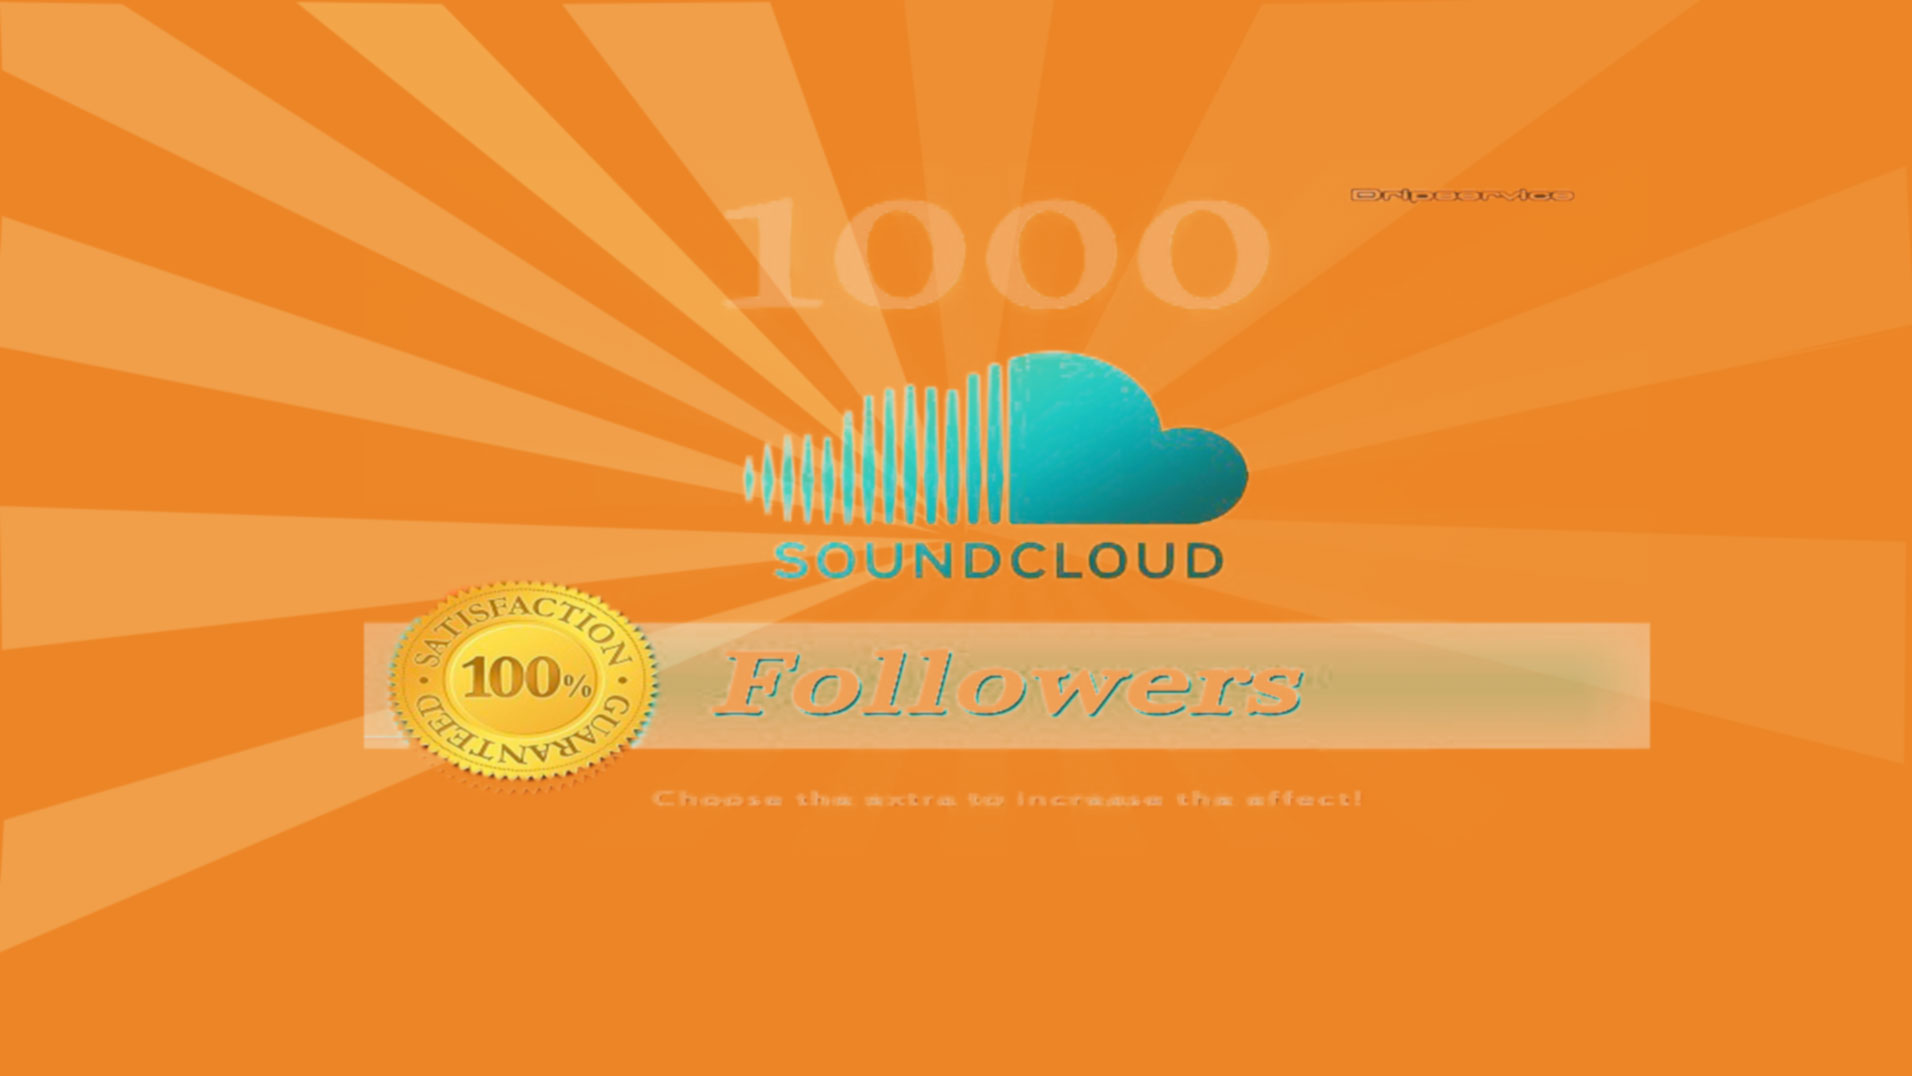 1000 soundclud play &1000 real and active followers